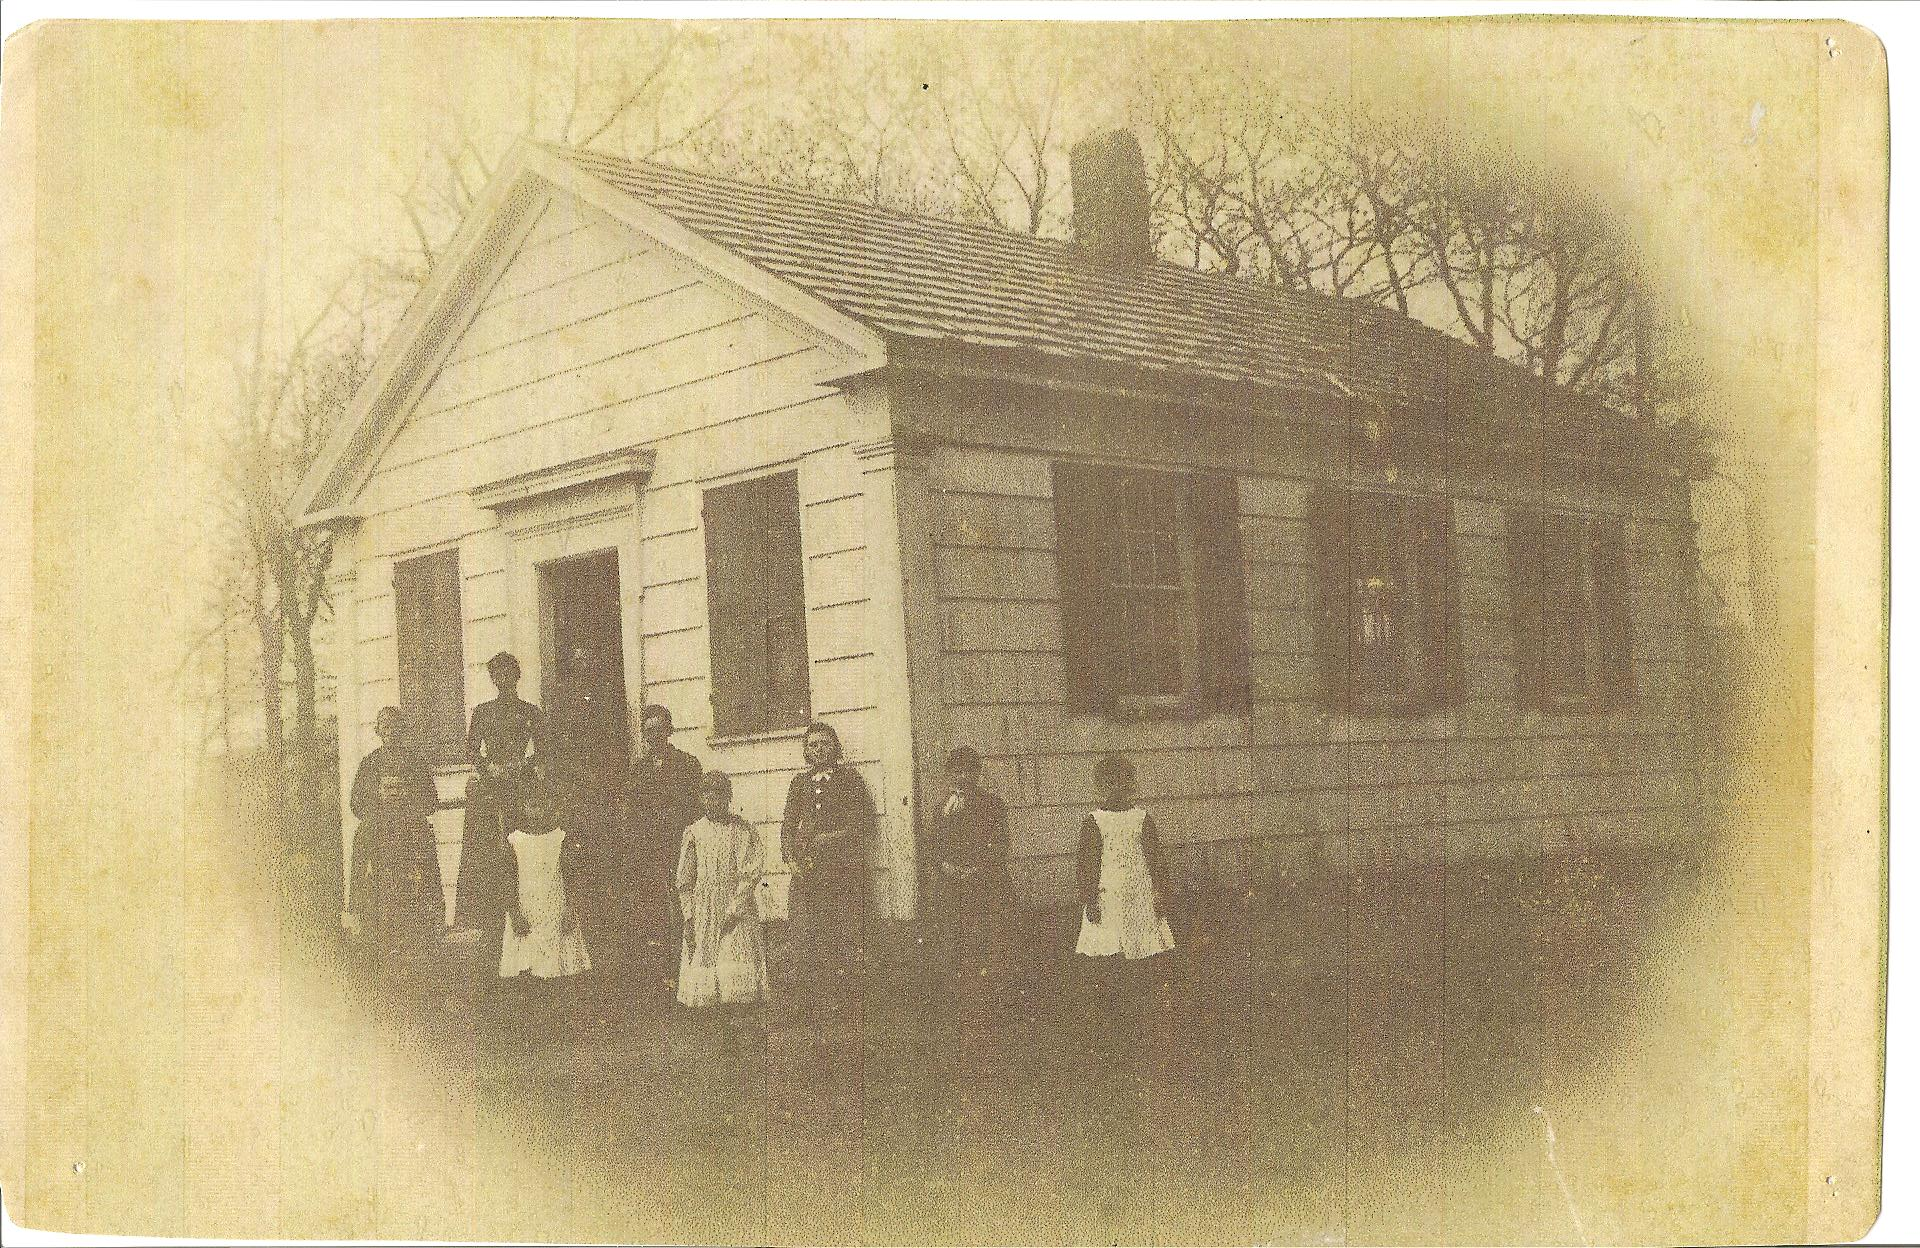 Schoolhouse & Students c.unknown